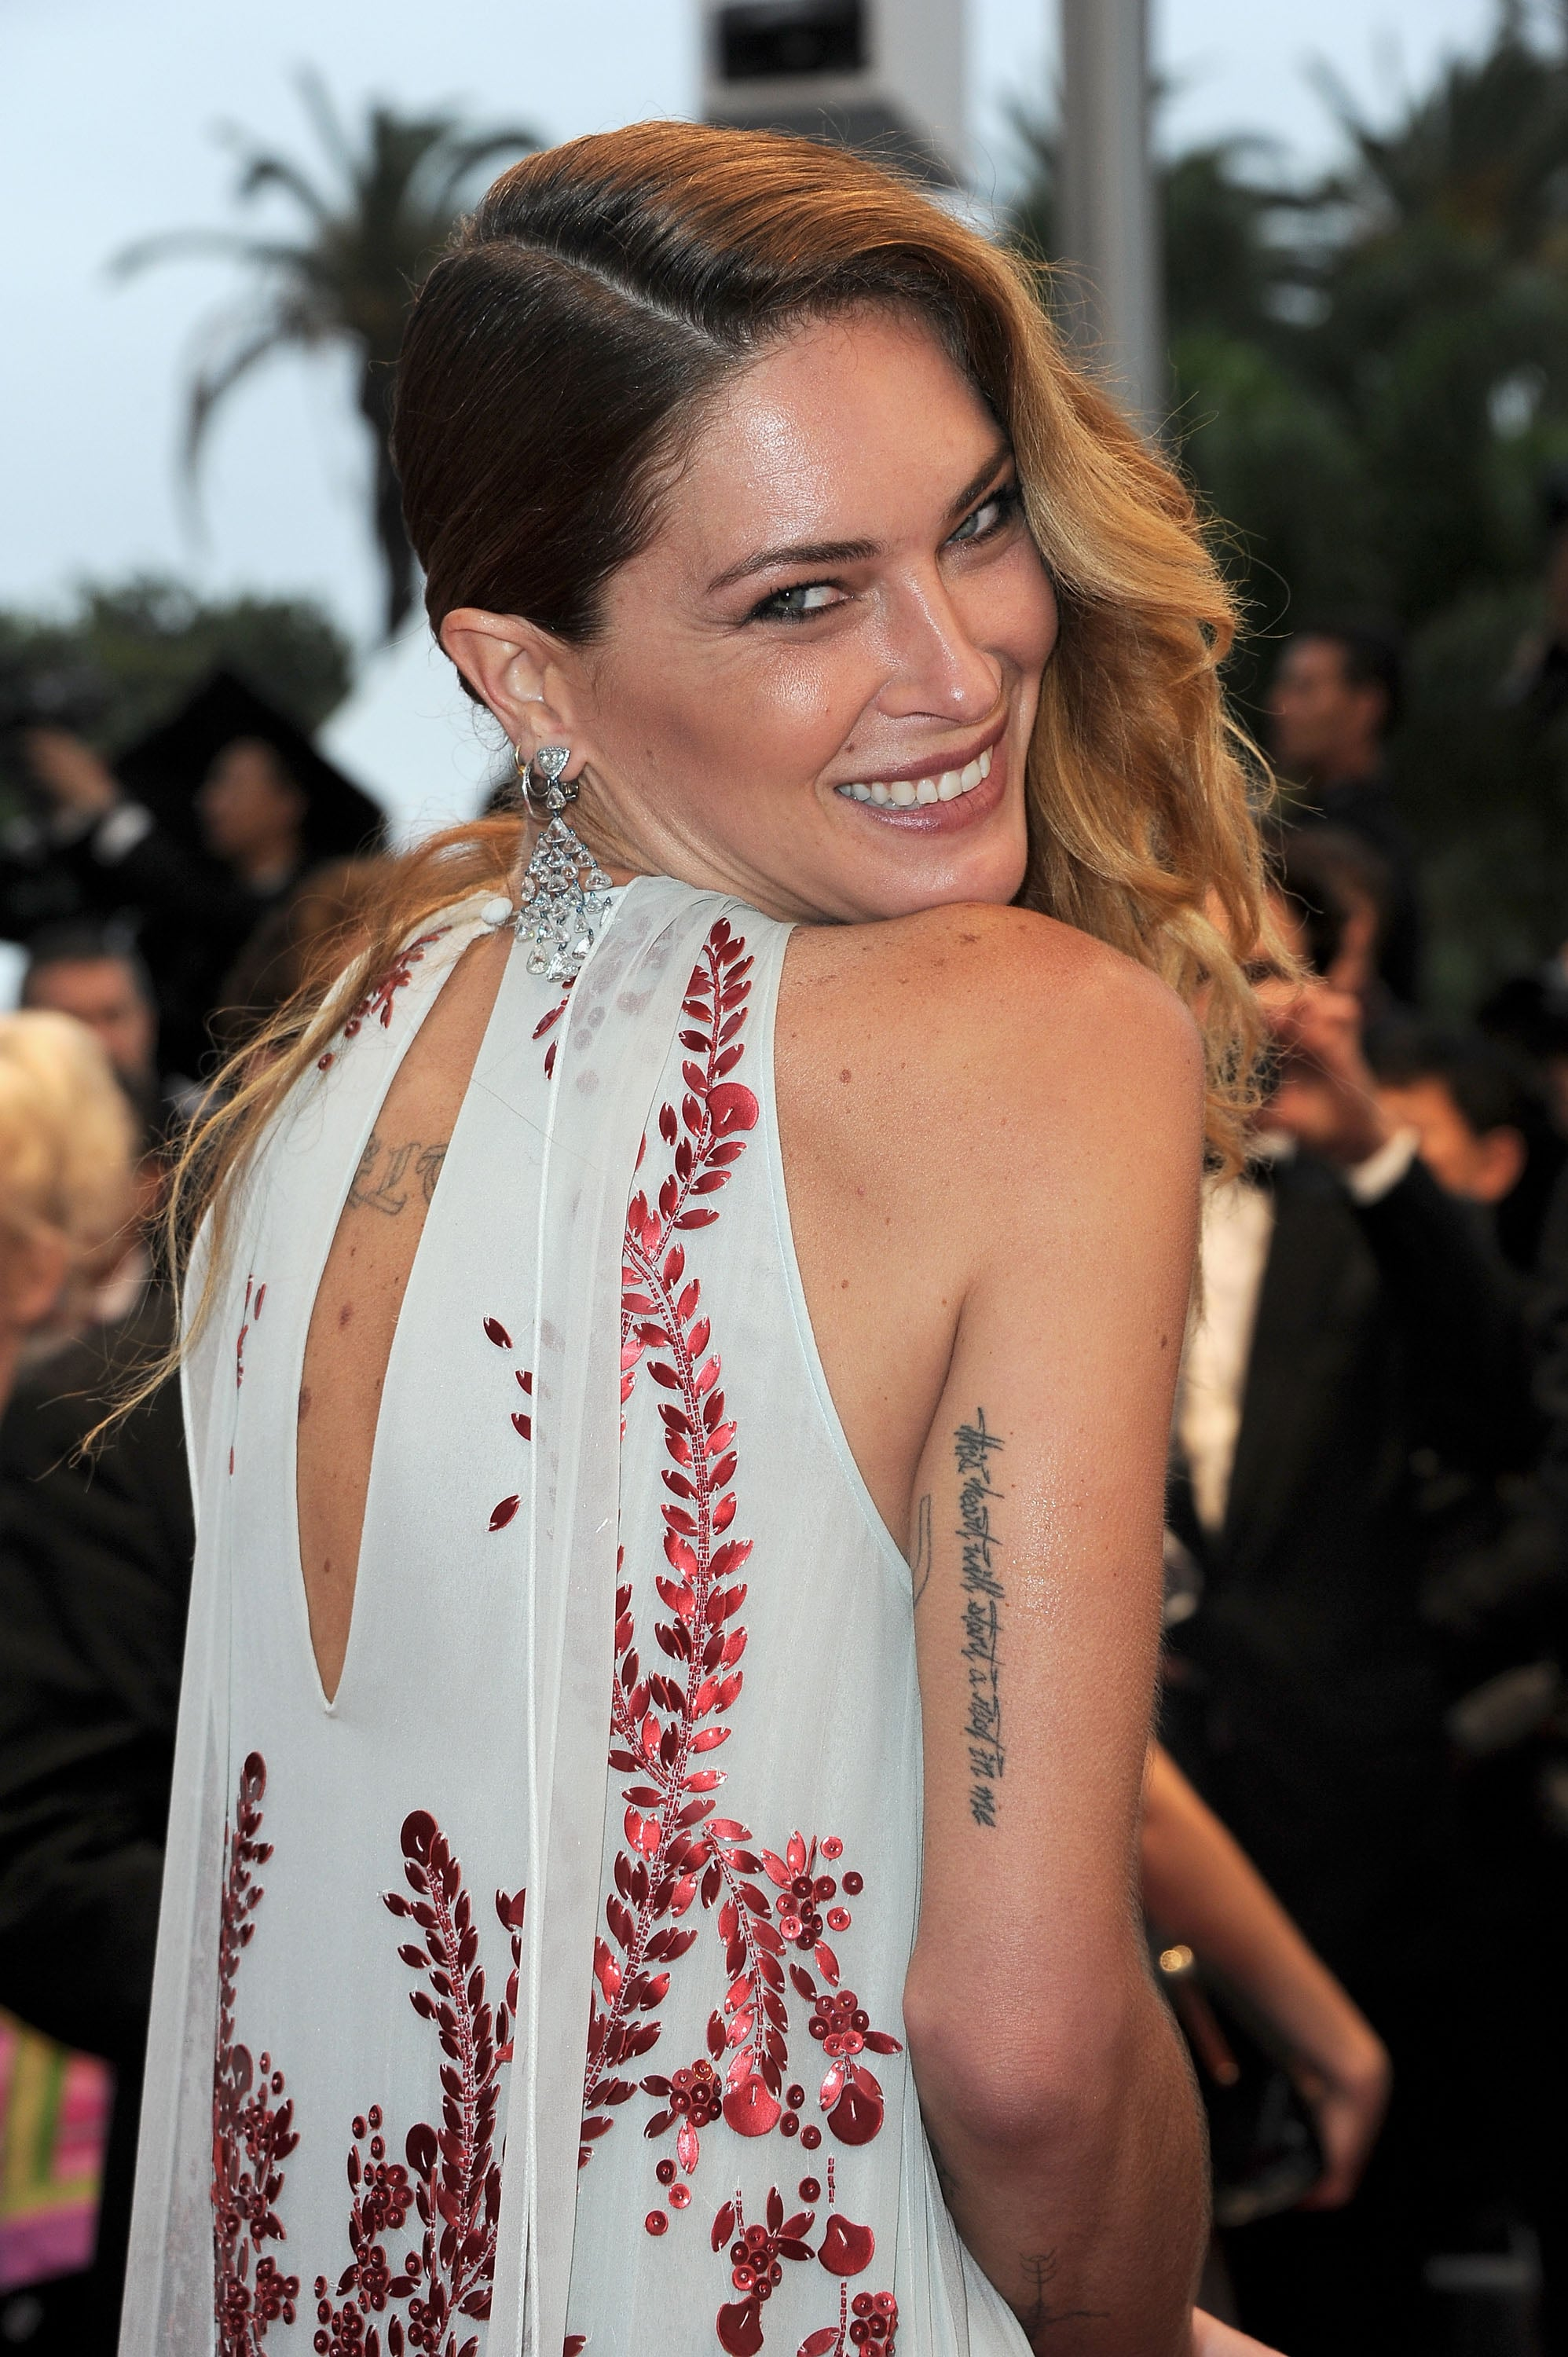 Erin Wasson 10 Chic Model Tattoos That Will Make You Want To Get Inked Popsugar Beauty Photo 2